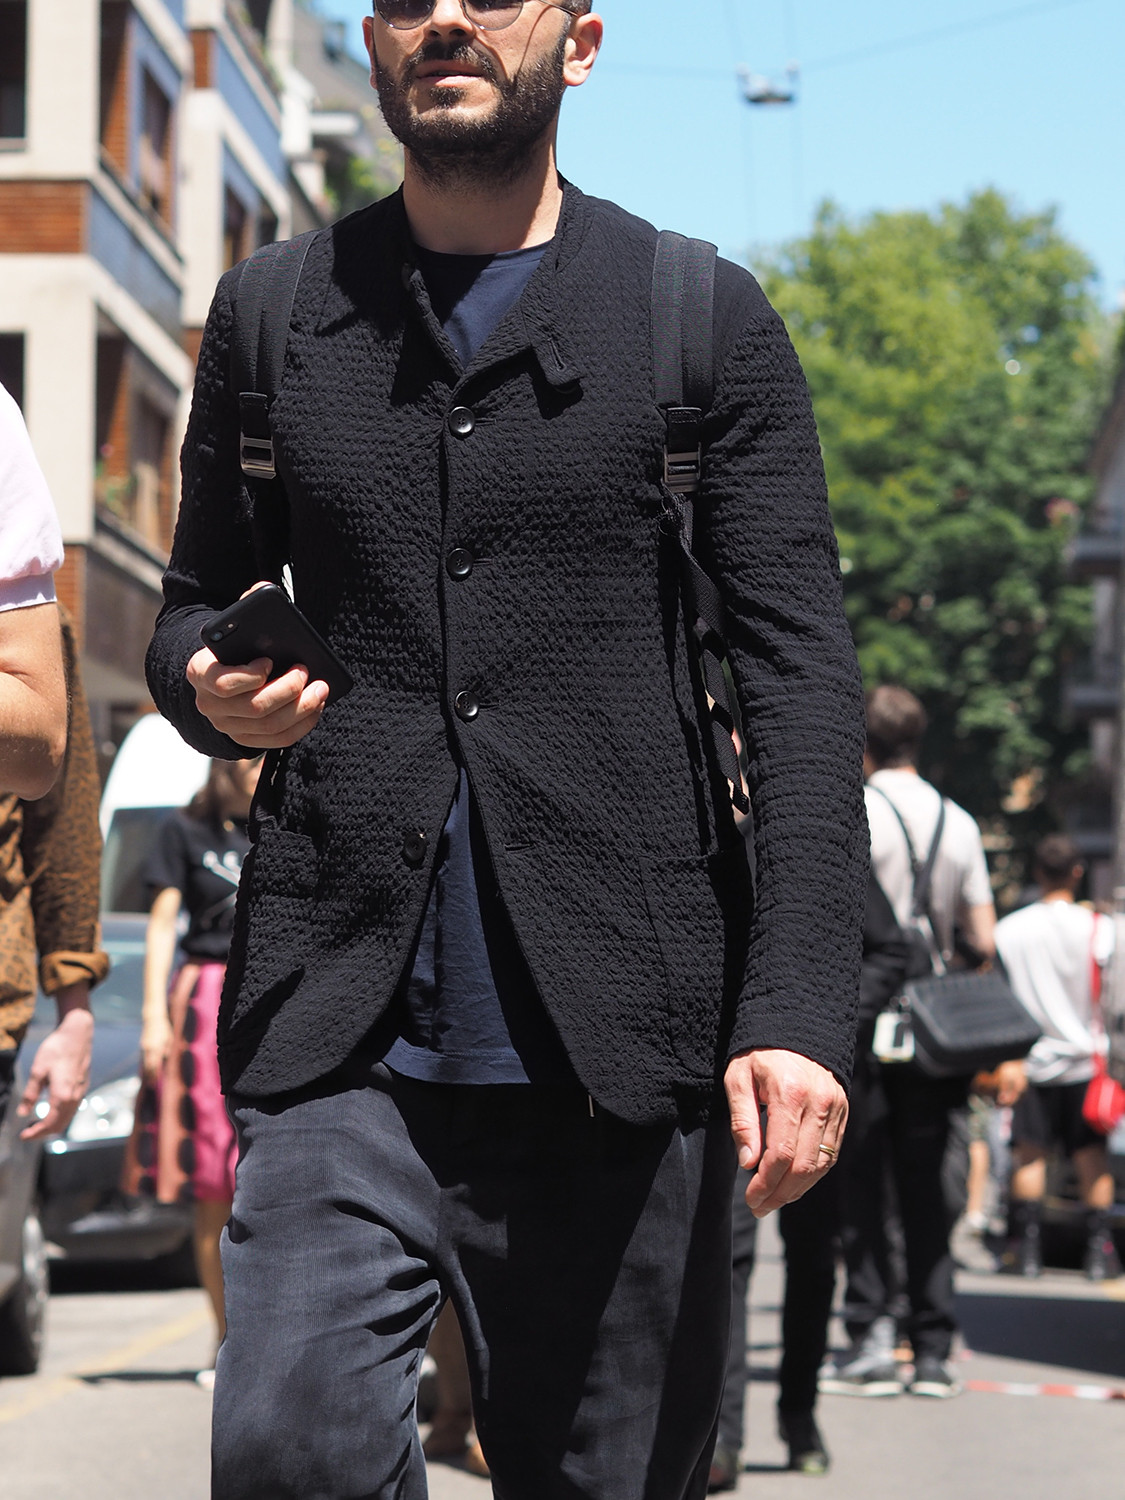 Men's outfit idea for 2021 with black overshirt, navy crew neck t-shirt, navy chinos, black rucksack, converse. Suitable for spring and autumn.